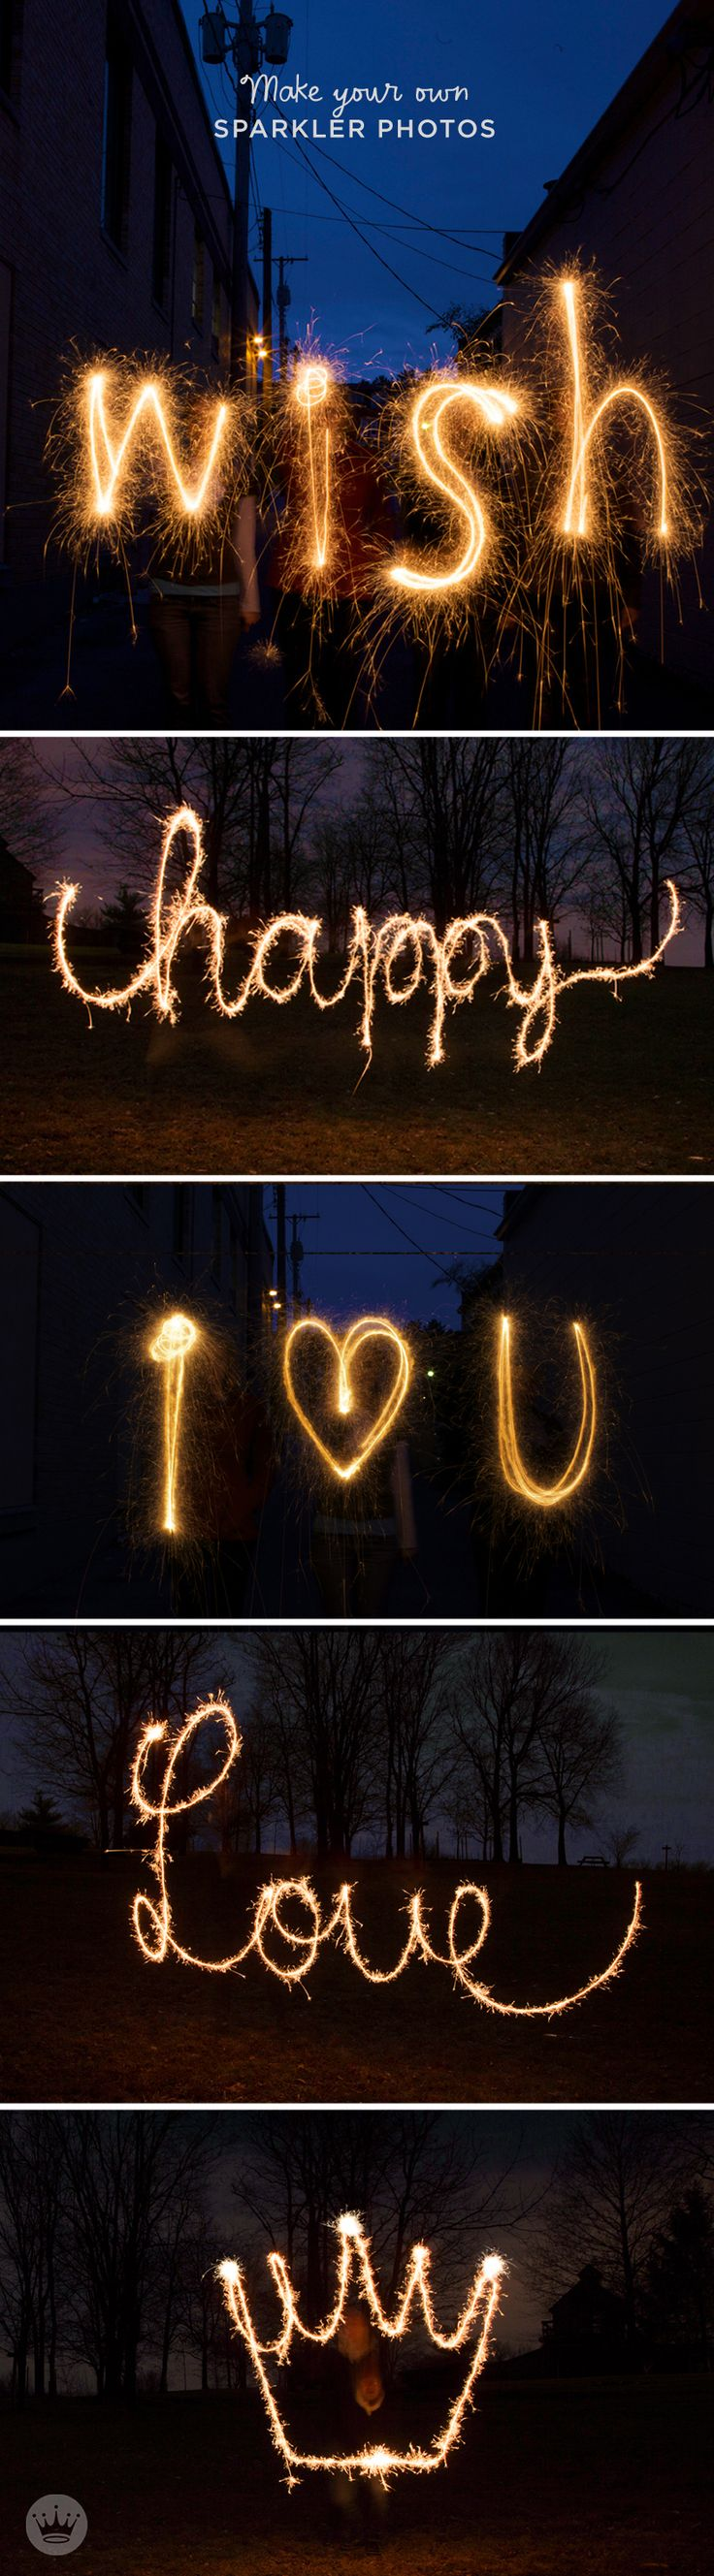 Sparkler Writing | Have some fun this Fourth of July with Sparkler Messages! Think.Make.Share, a blog from the Creative Studios at Hallmark, will teach you how to use your cameras to create memorable photographs as you write with sparklers! This is such a cool photo idea that can be used for all kinds of specials occasions—like engagements, weddings, baby announcements, and gender reveals!